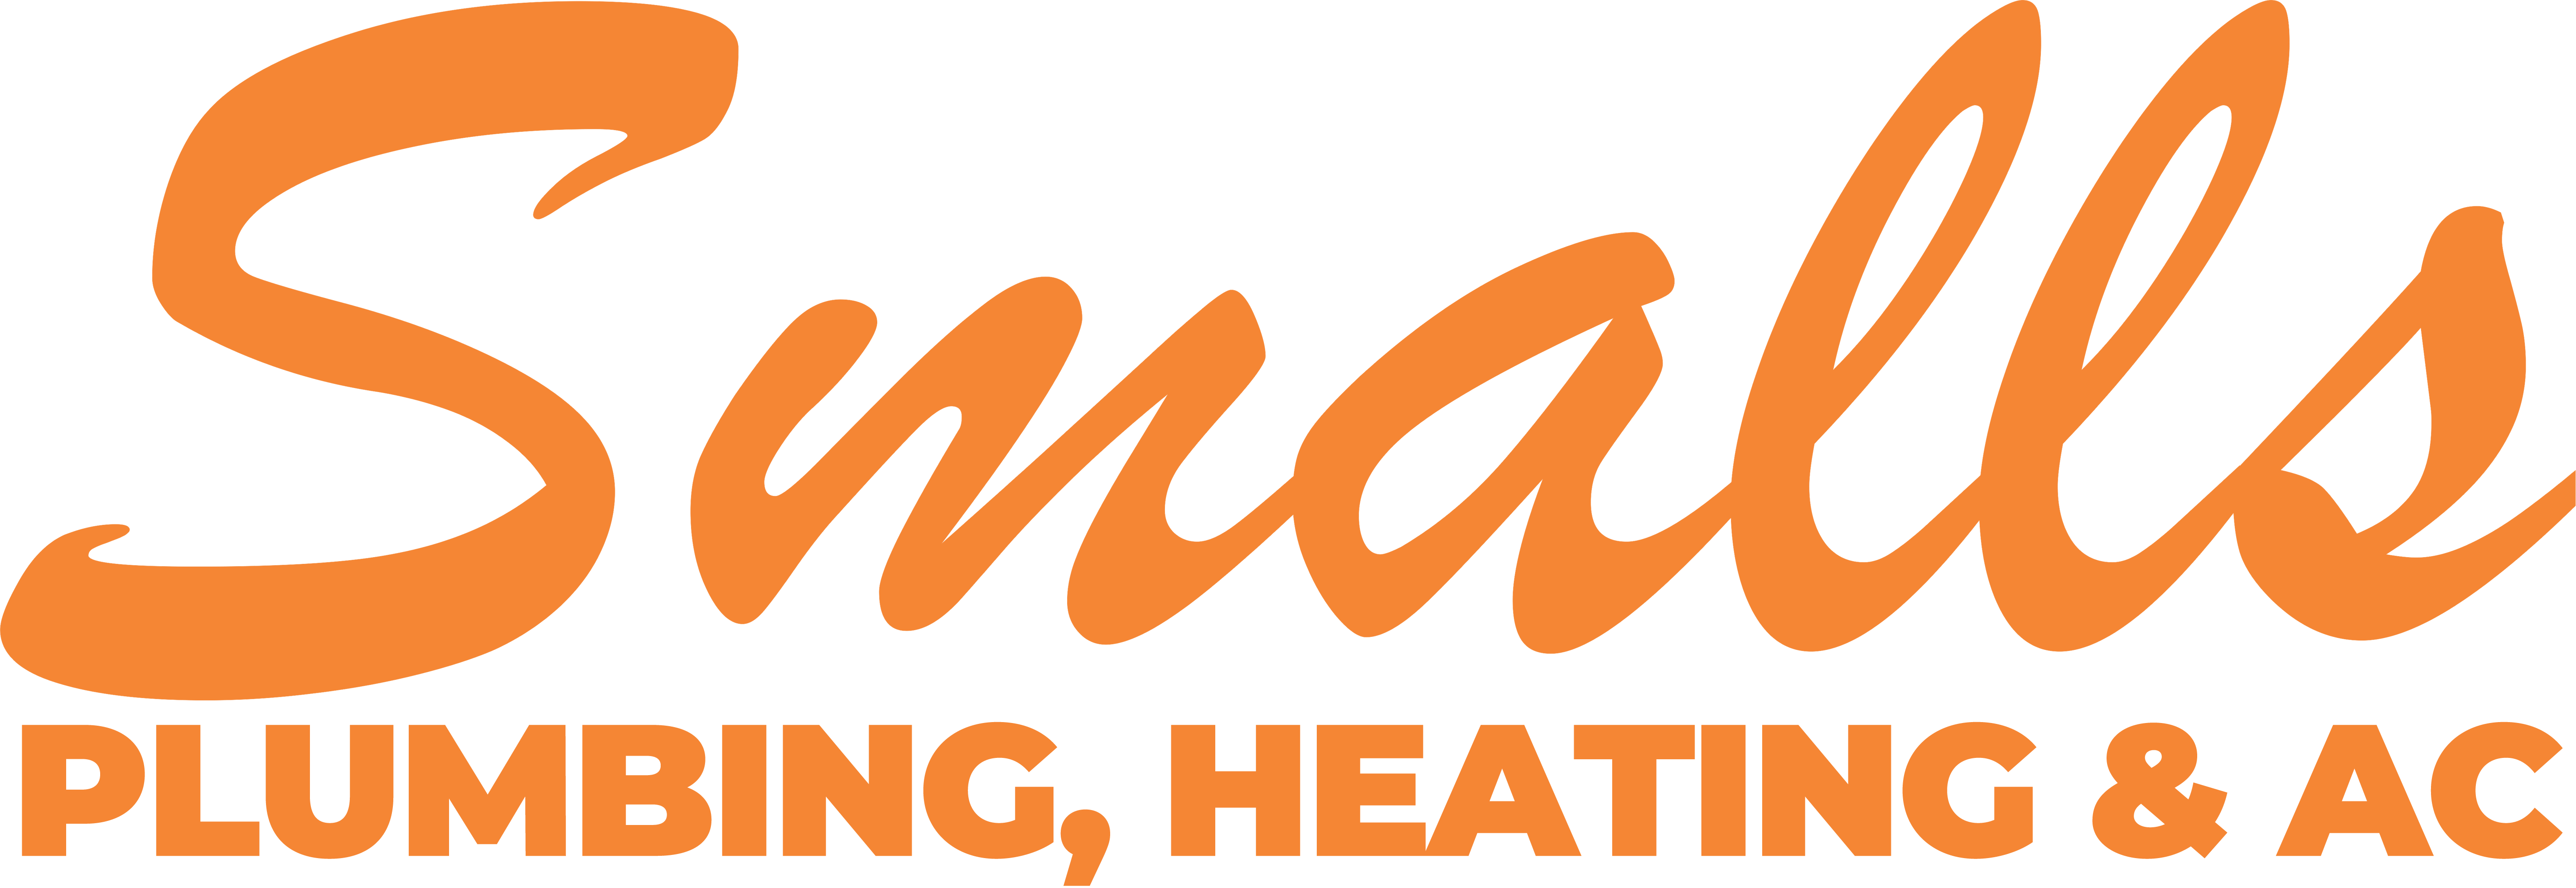 Call for reliable Furnace replacement in Bethel NY.